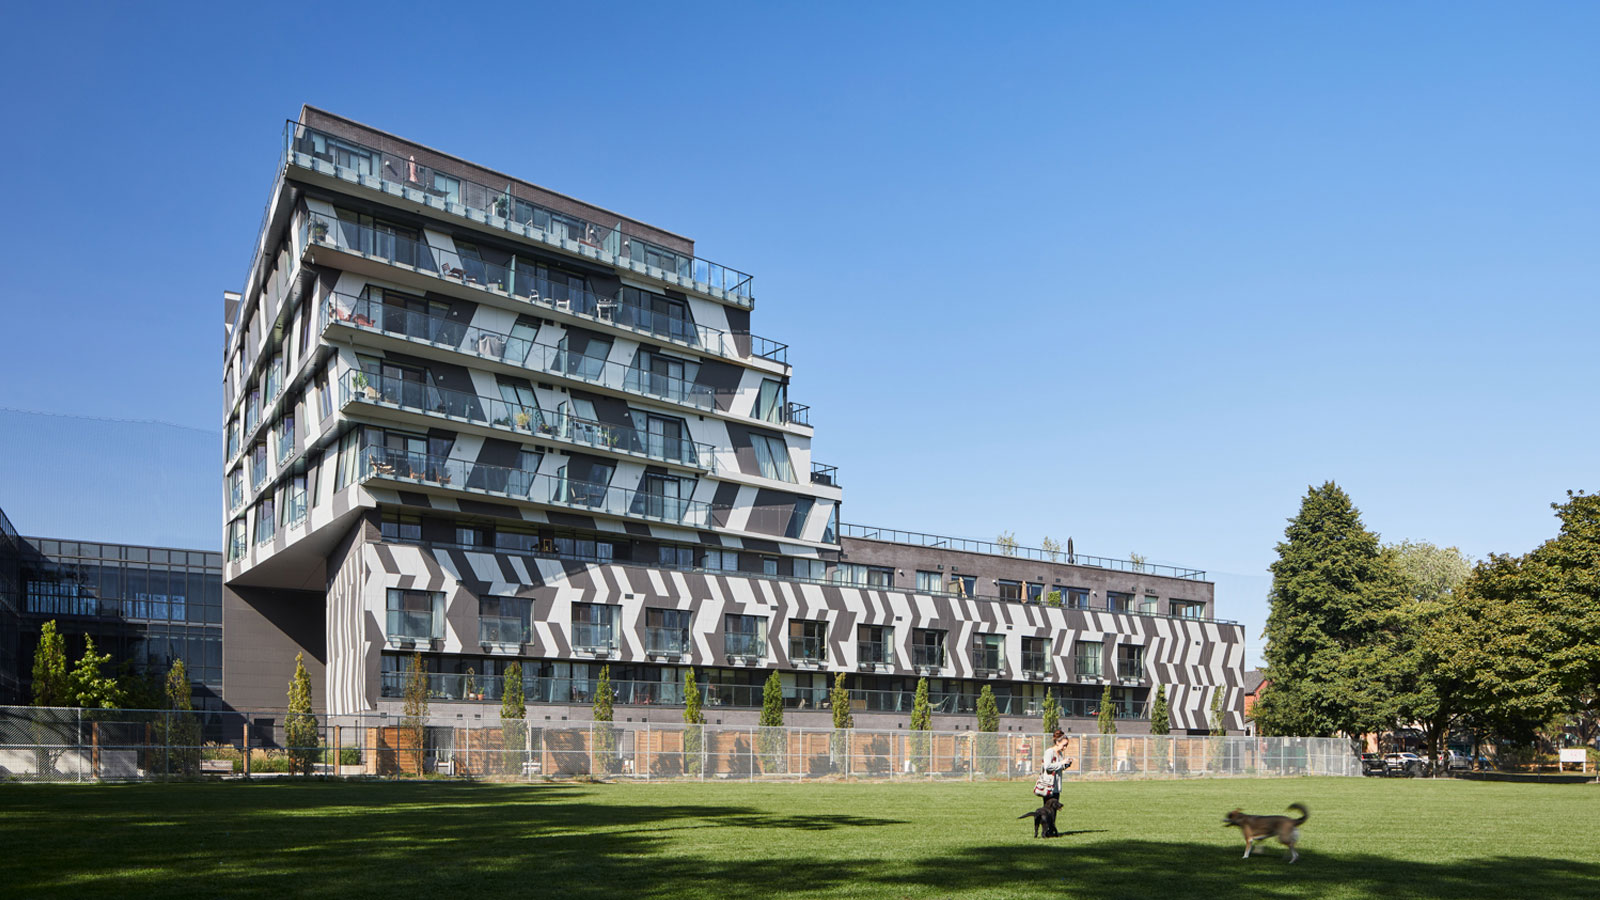 BDP - Architecture, Design and Urbanism Firm